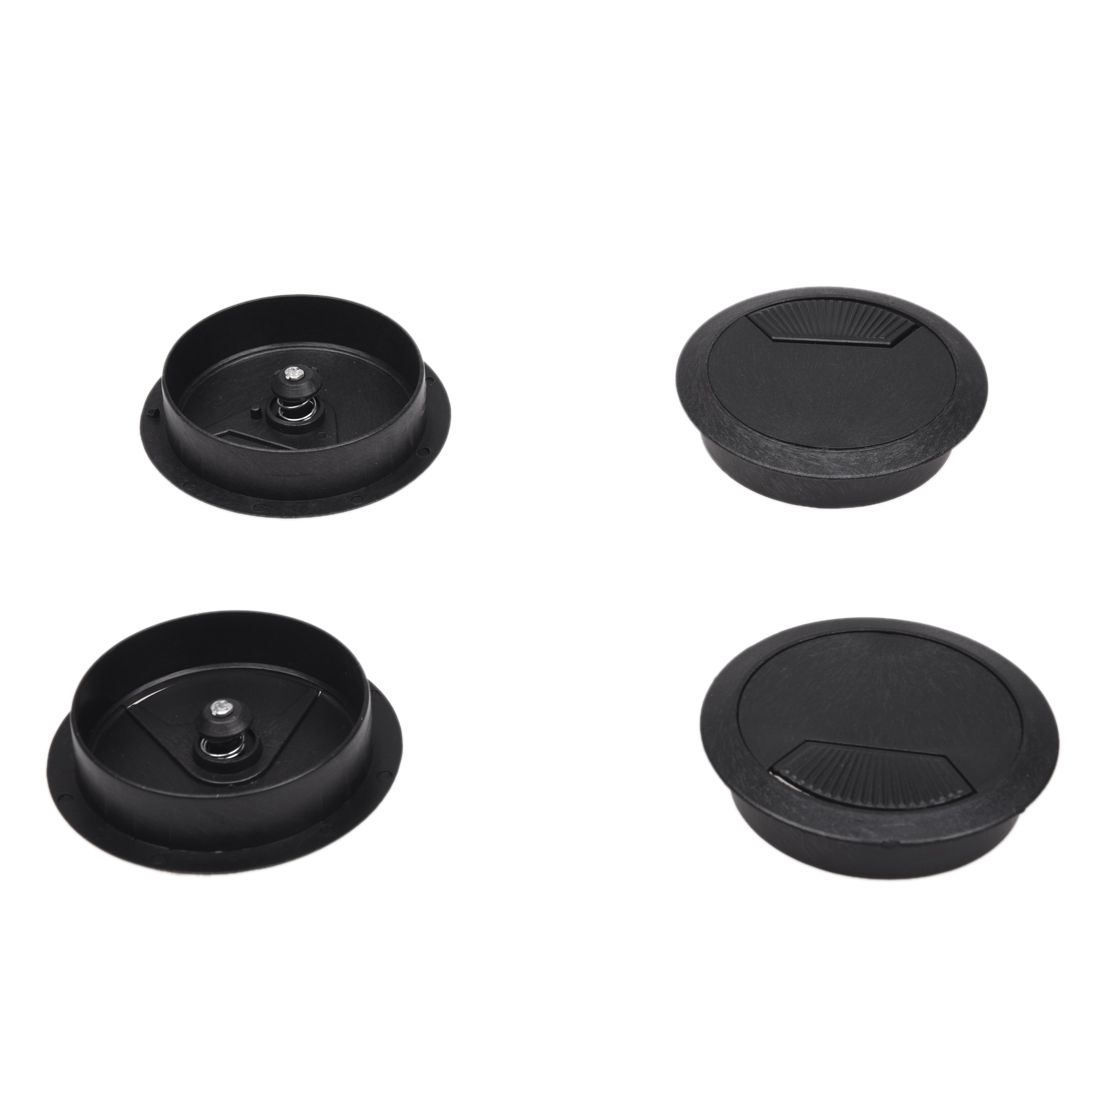 HOT GCZW- 2.3 Dia Round Plastic Desk Computer Grommet Hole Wire Cover Black 4 PcsHOT GCZW- 2.3 Dia Round Plastic Desk Computer Grommet Hole Wire Cover Black 4 Pcs